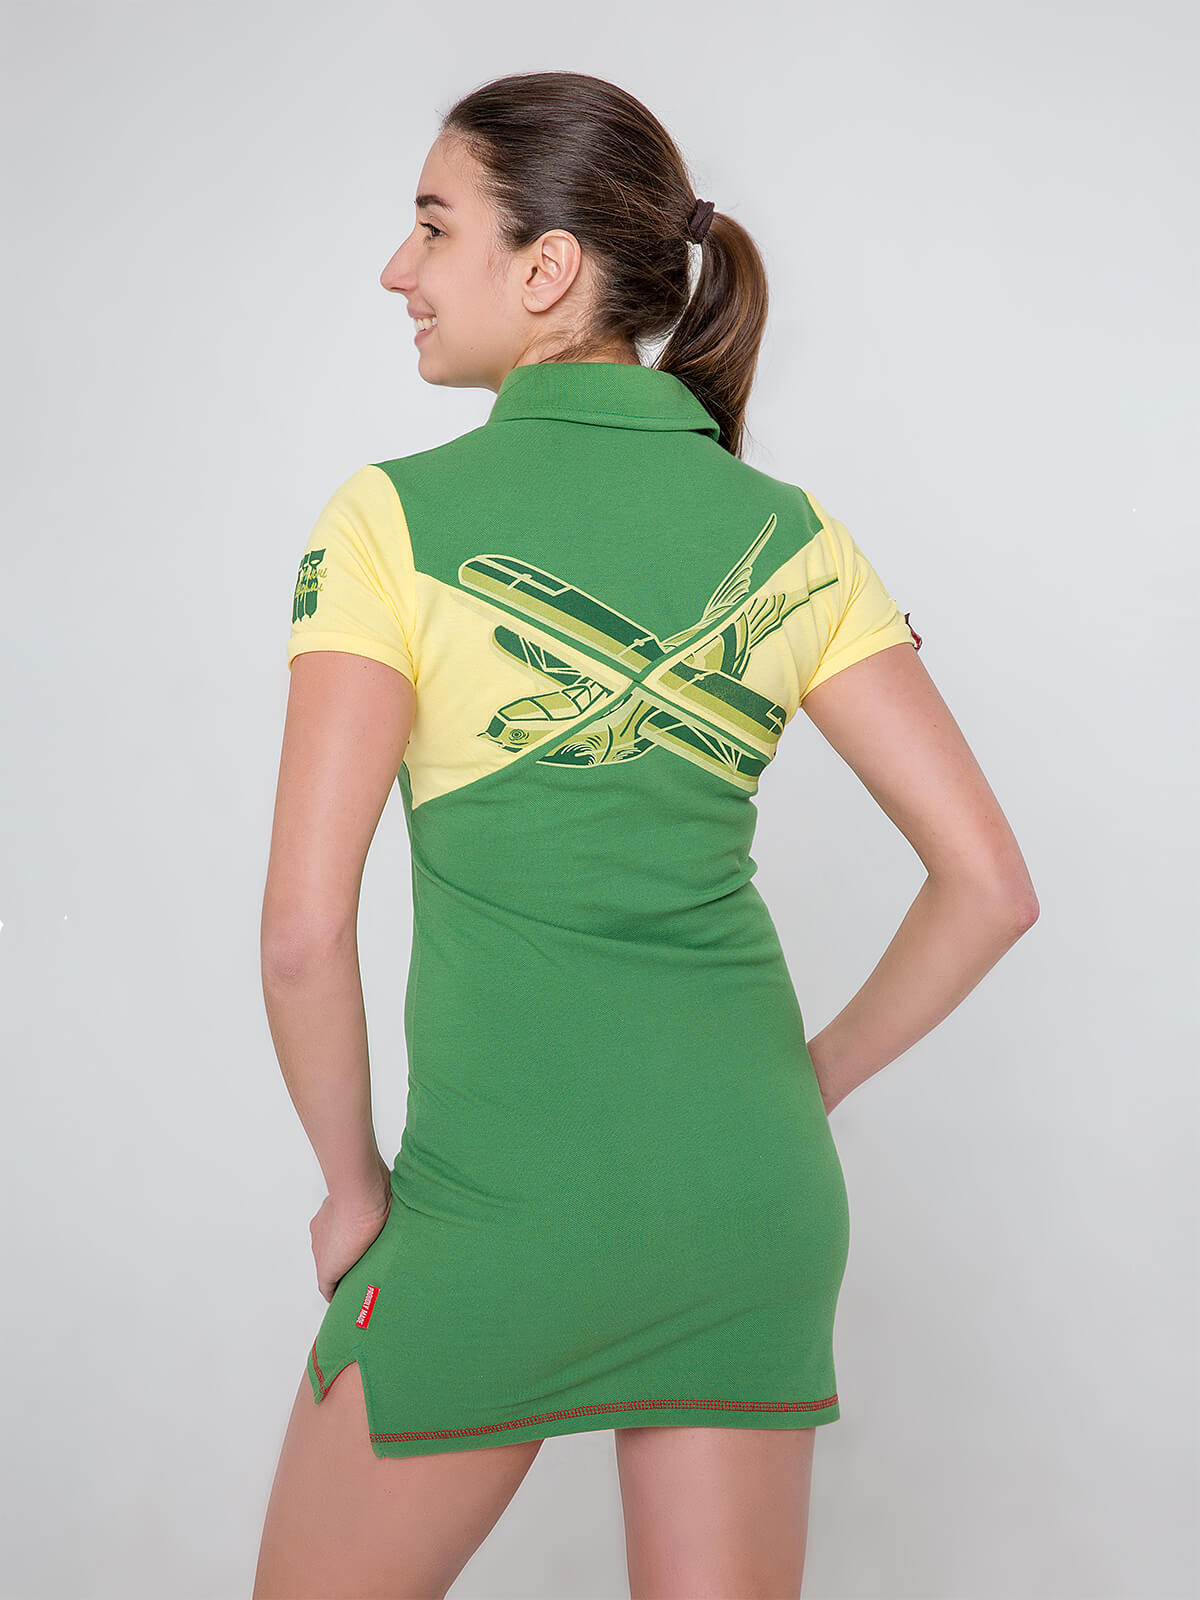 Women's Dress-Polo Shirt Darusia. Color yellow.  Technique of prints applied: embroidery, silkscreen printing.